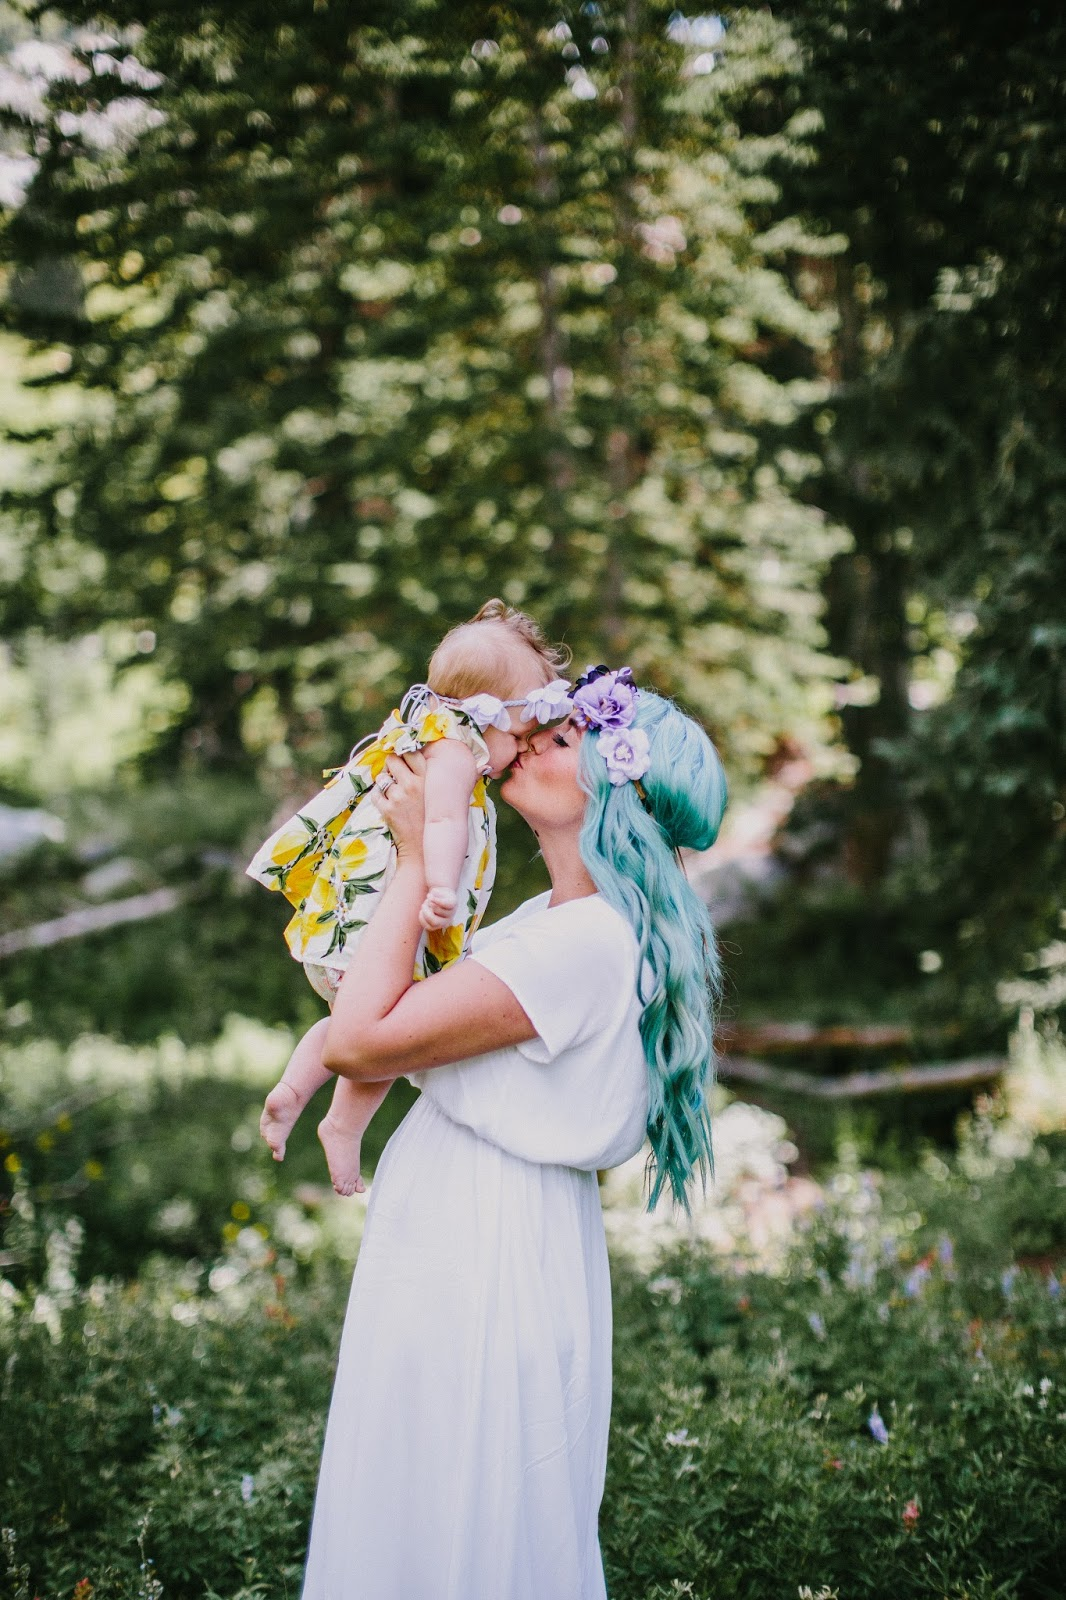 Blue Hair, Love Winnie James, Floral Headbands